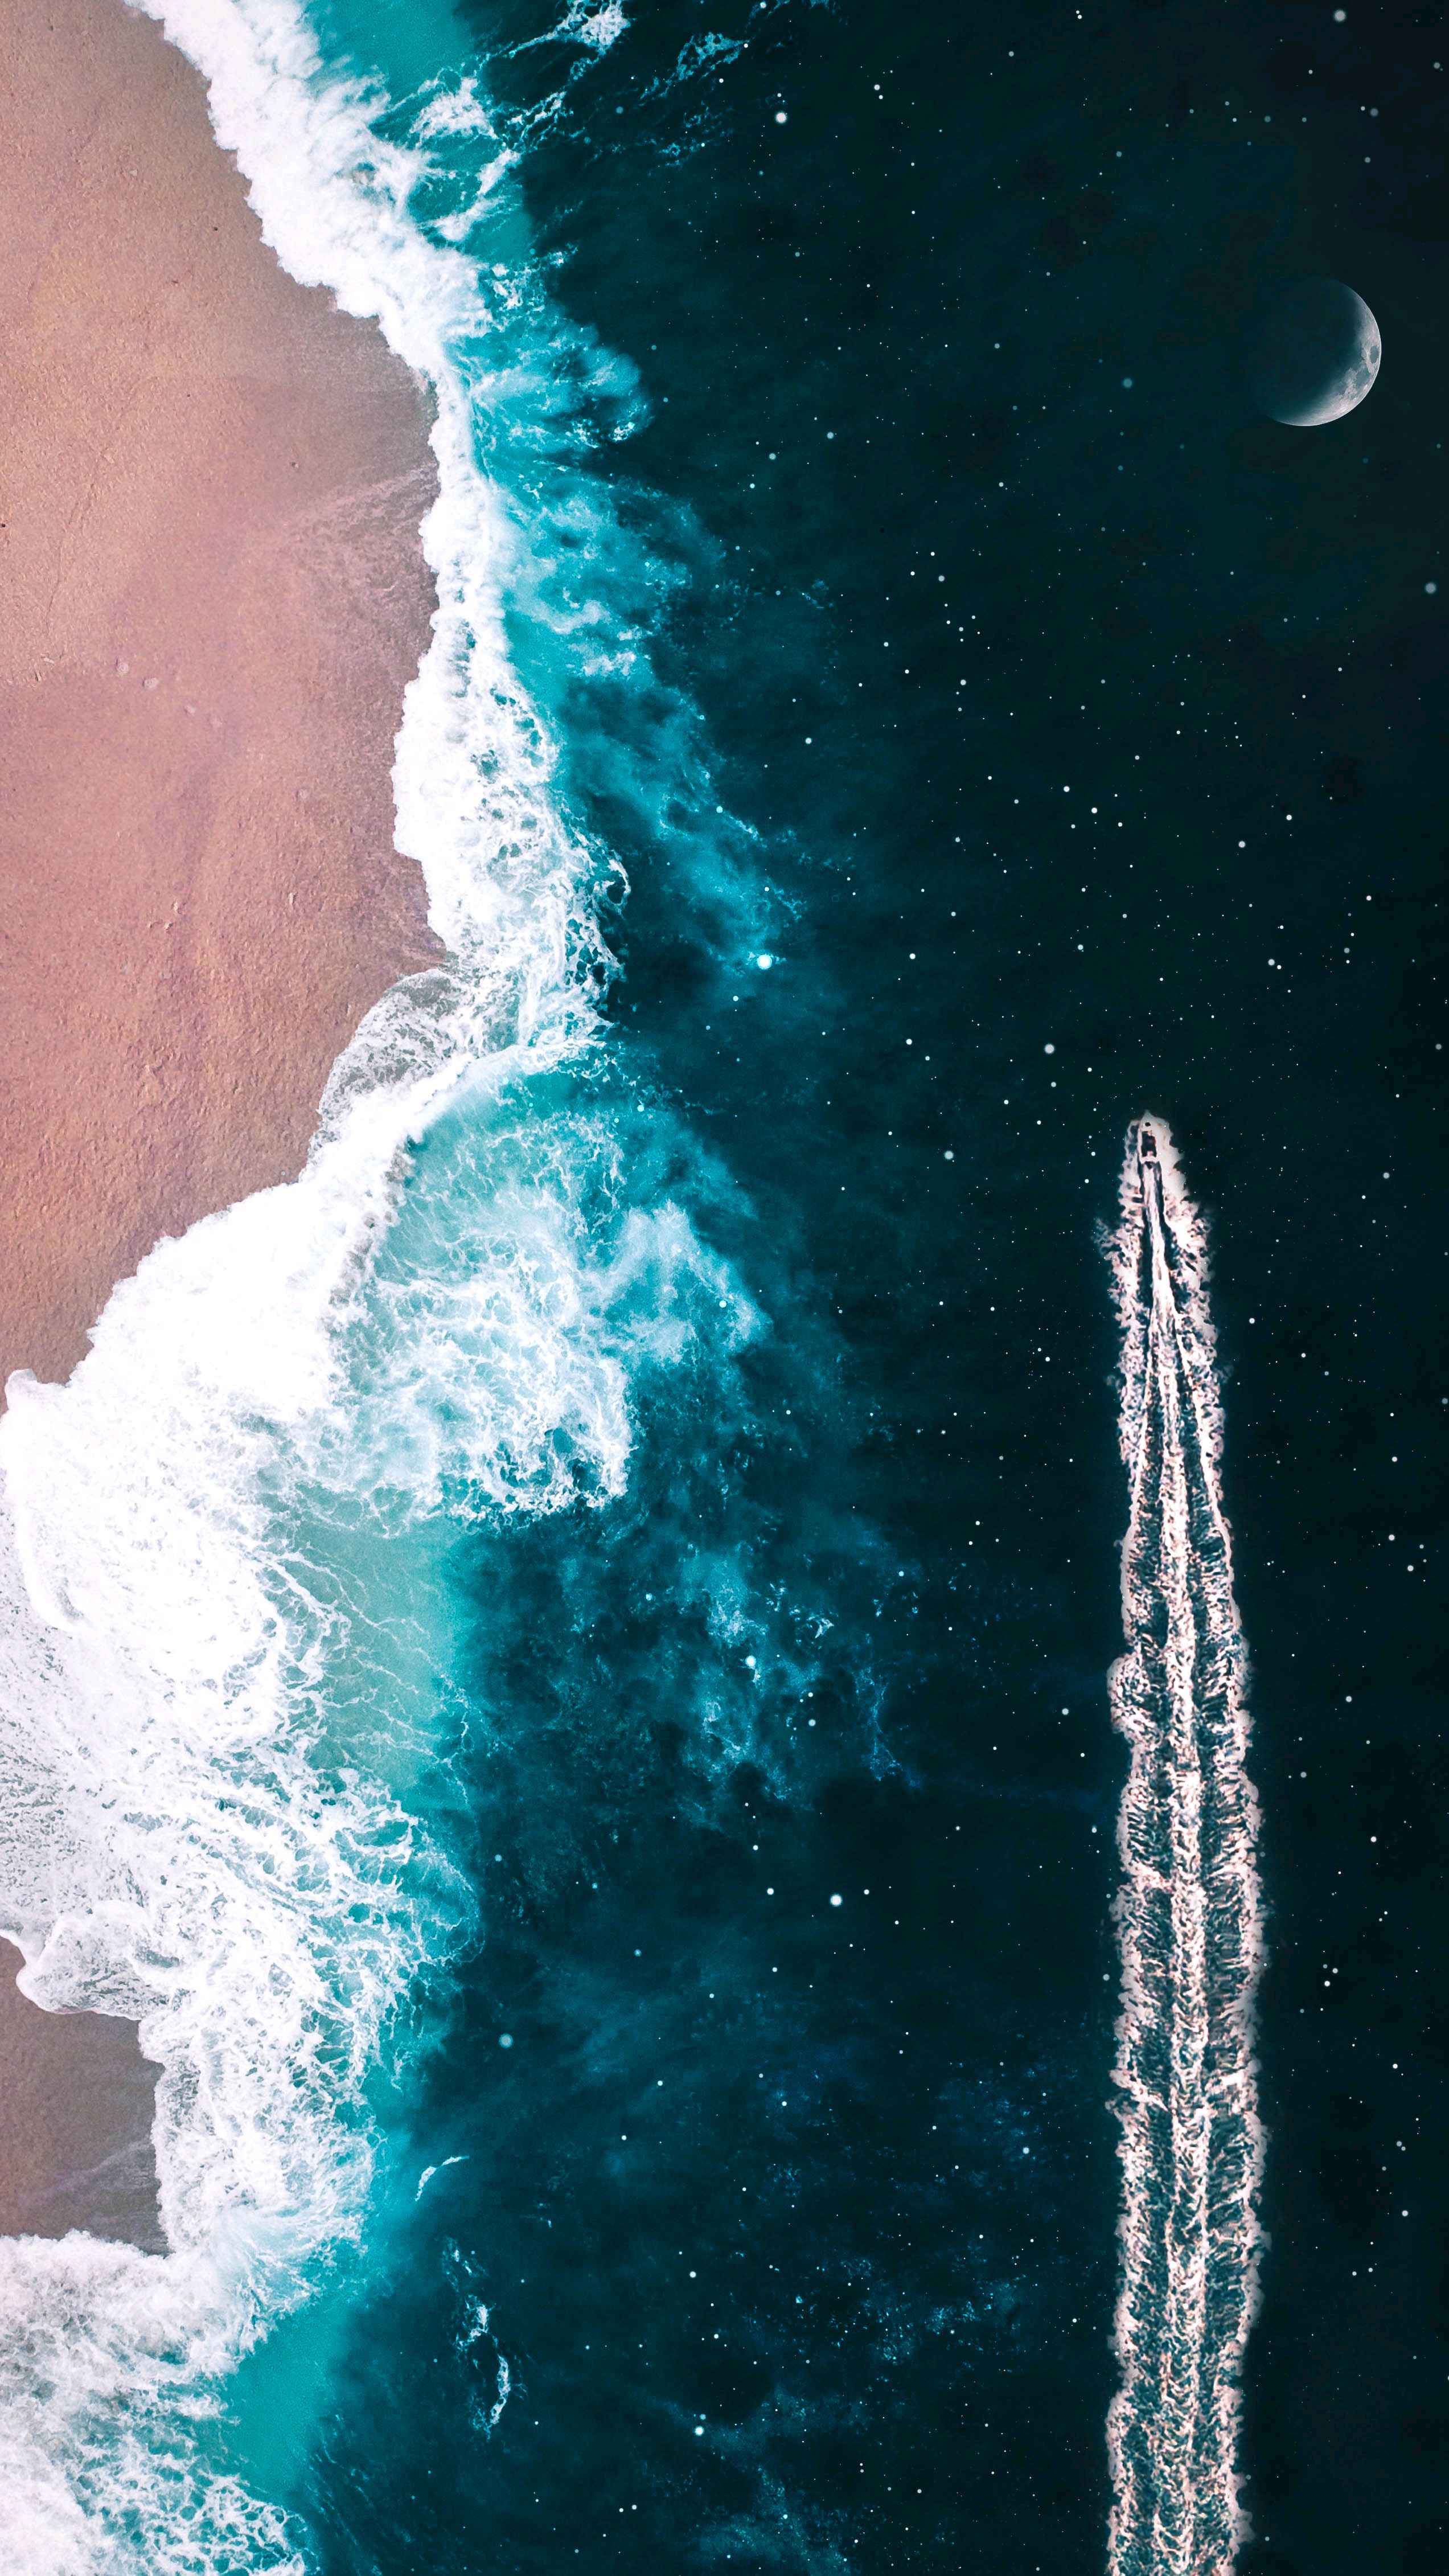 Cute And Cool Wallpapers For Iphone Sailing In Sea Of Stars Iphone Wallpaper Iphone Wallpapers